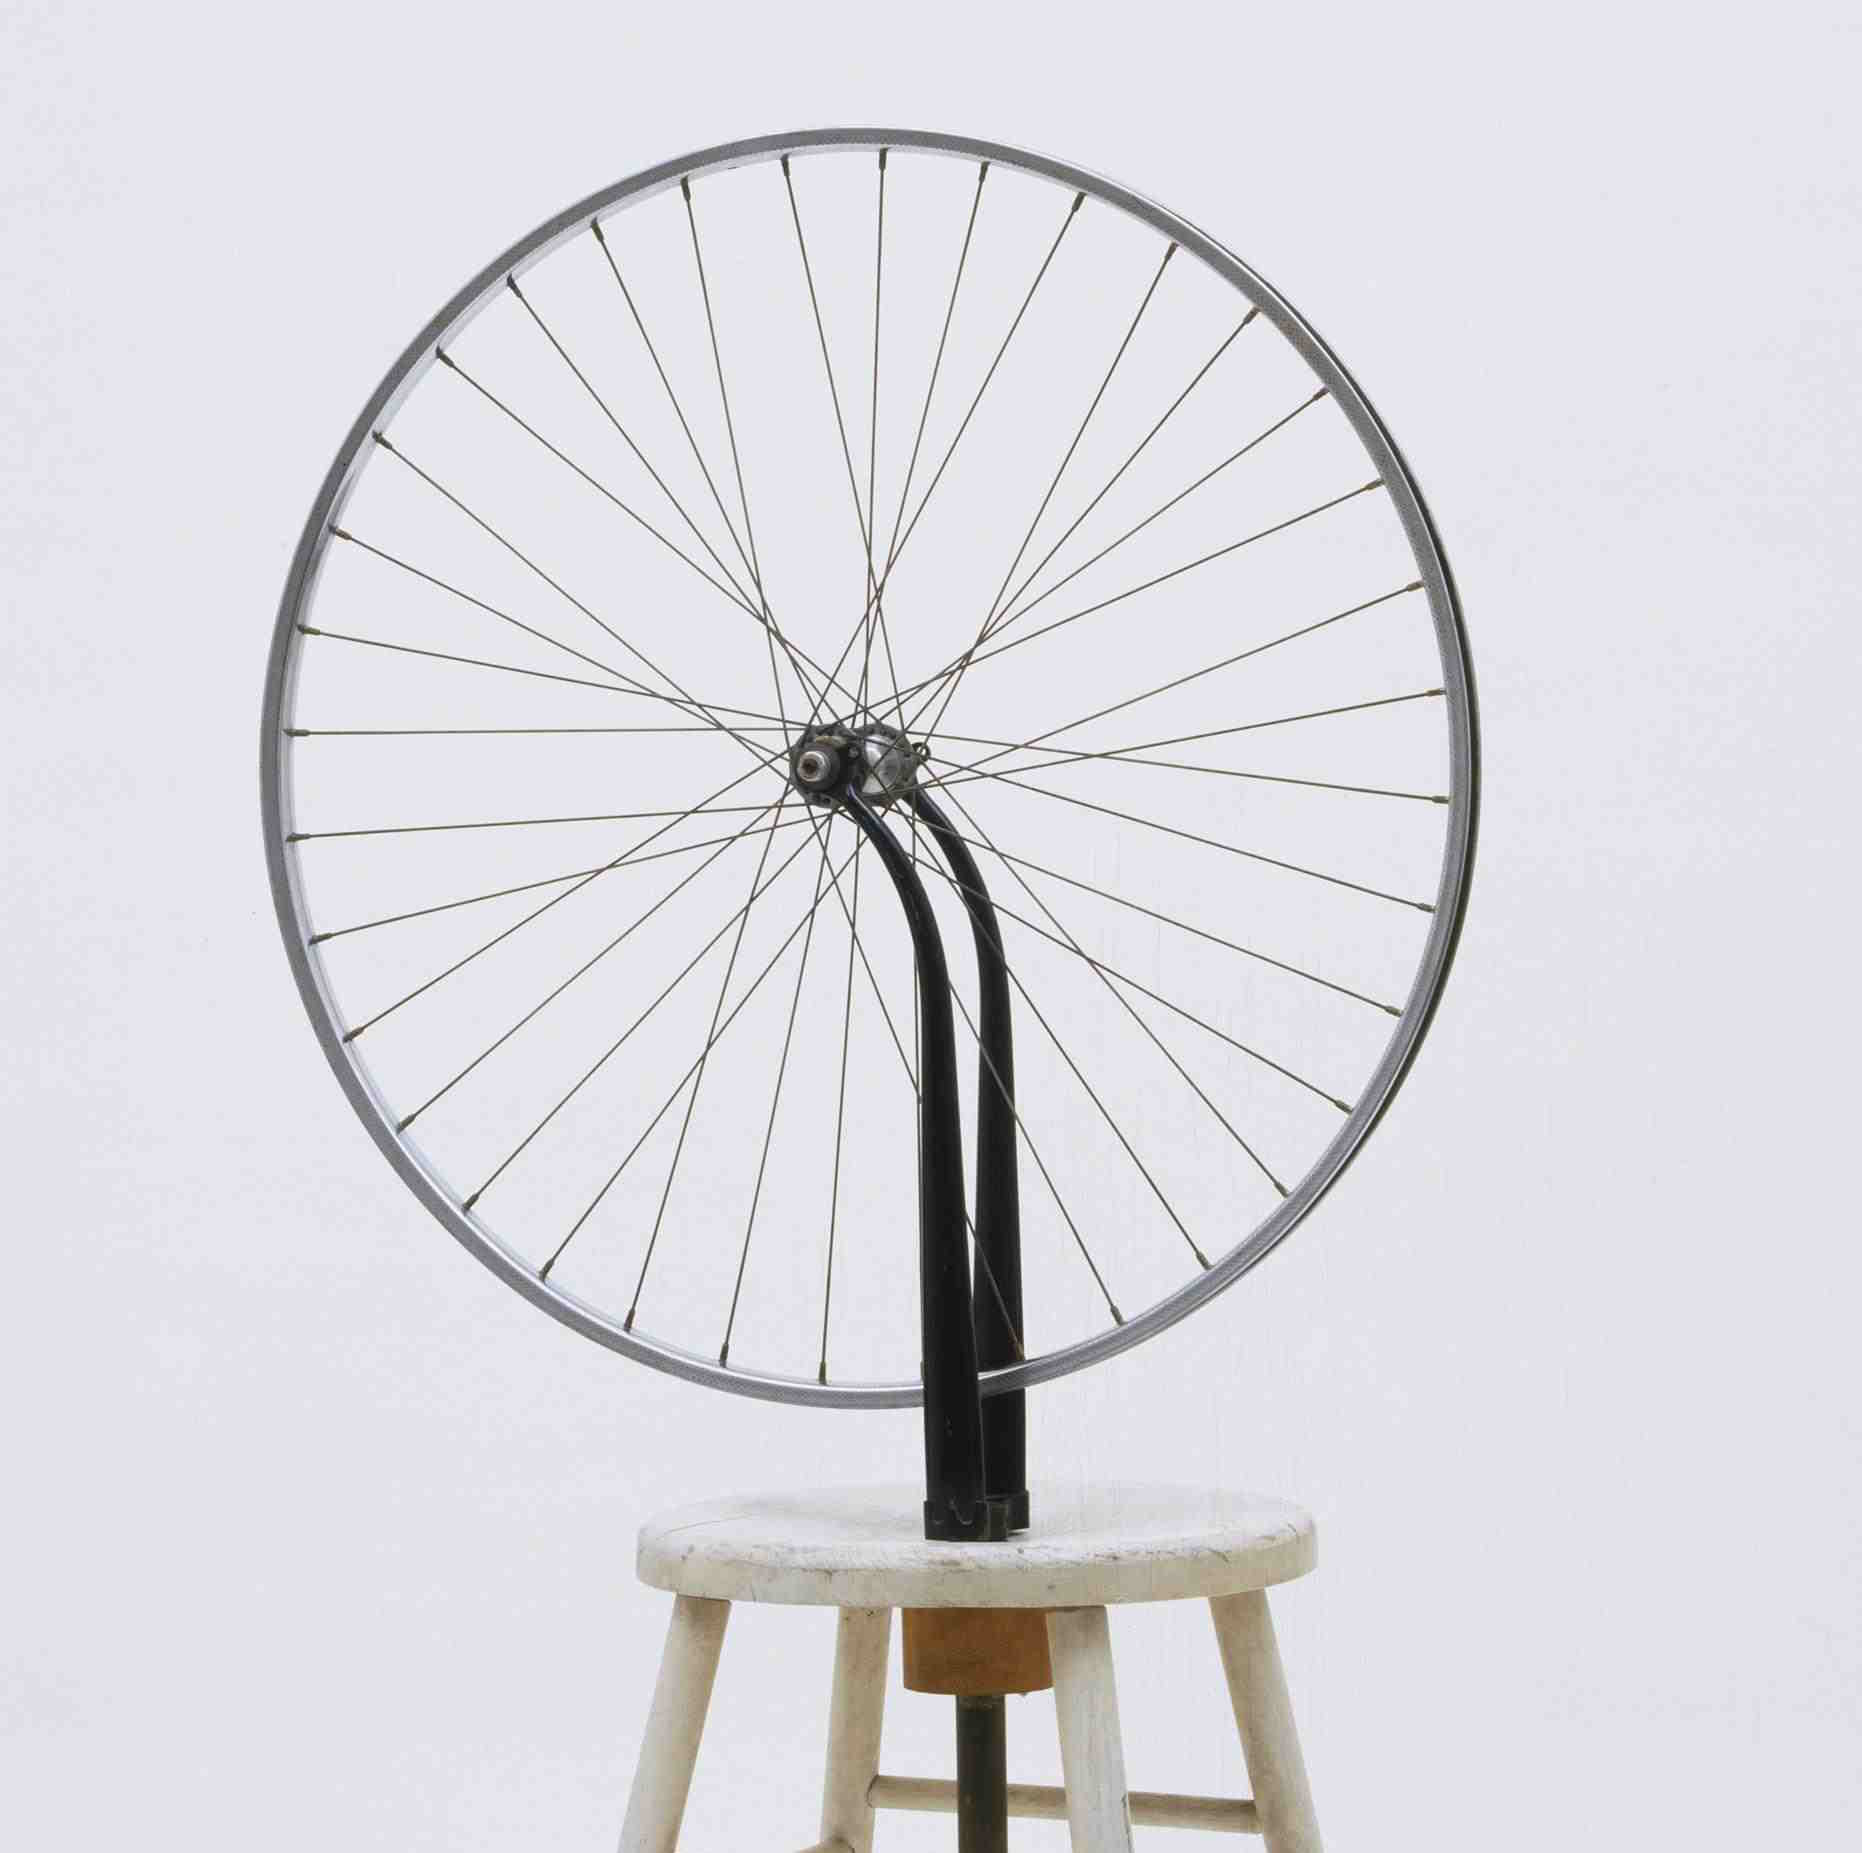 the creative expression in marcel duchamps bicycle wheel